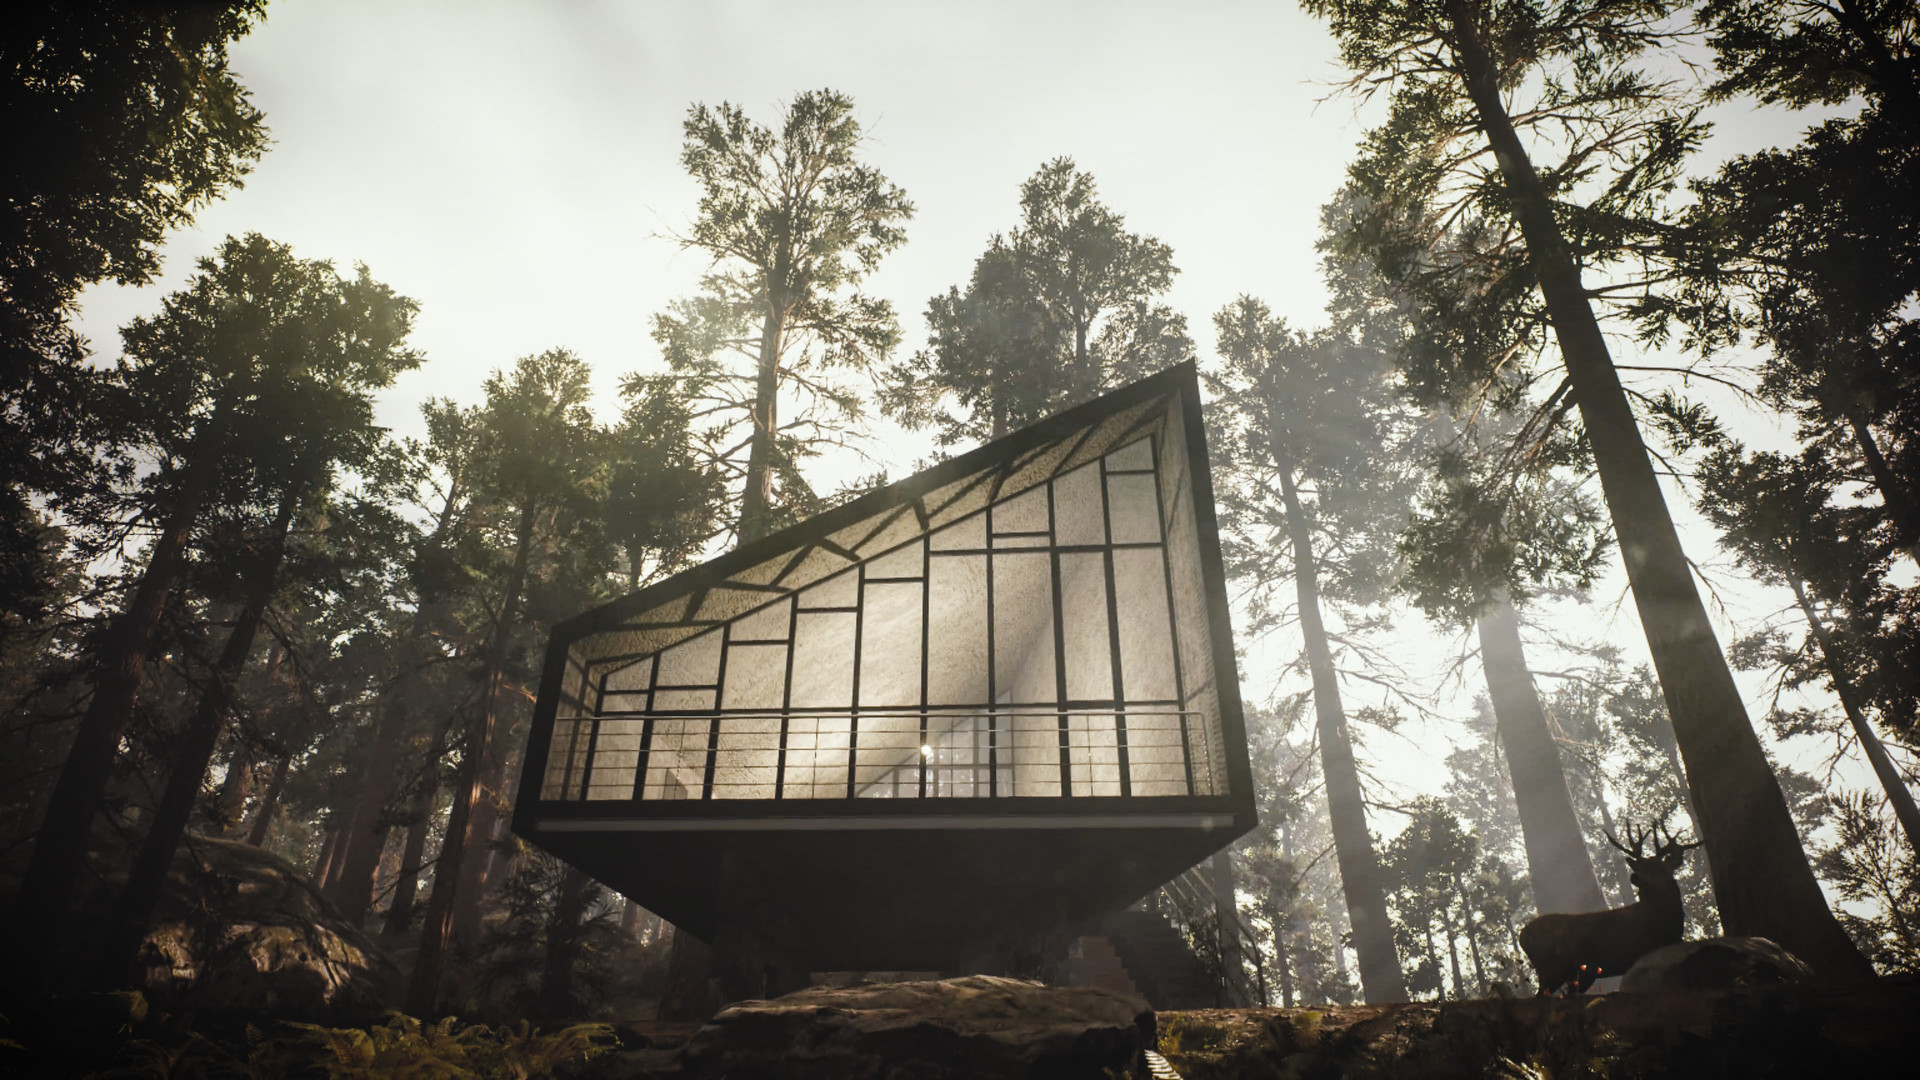 ArtStation - House in nature environment, Pasquale Scionti